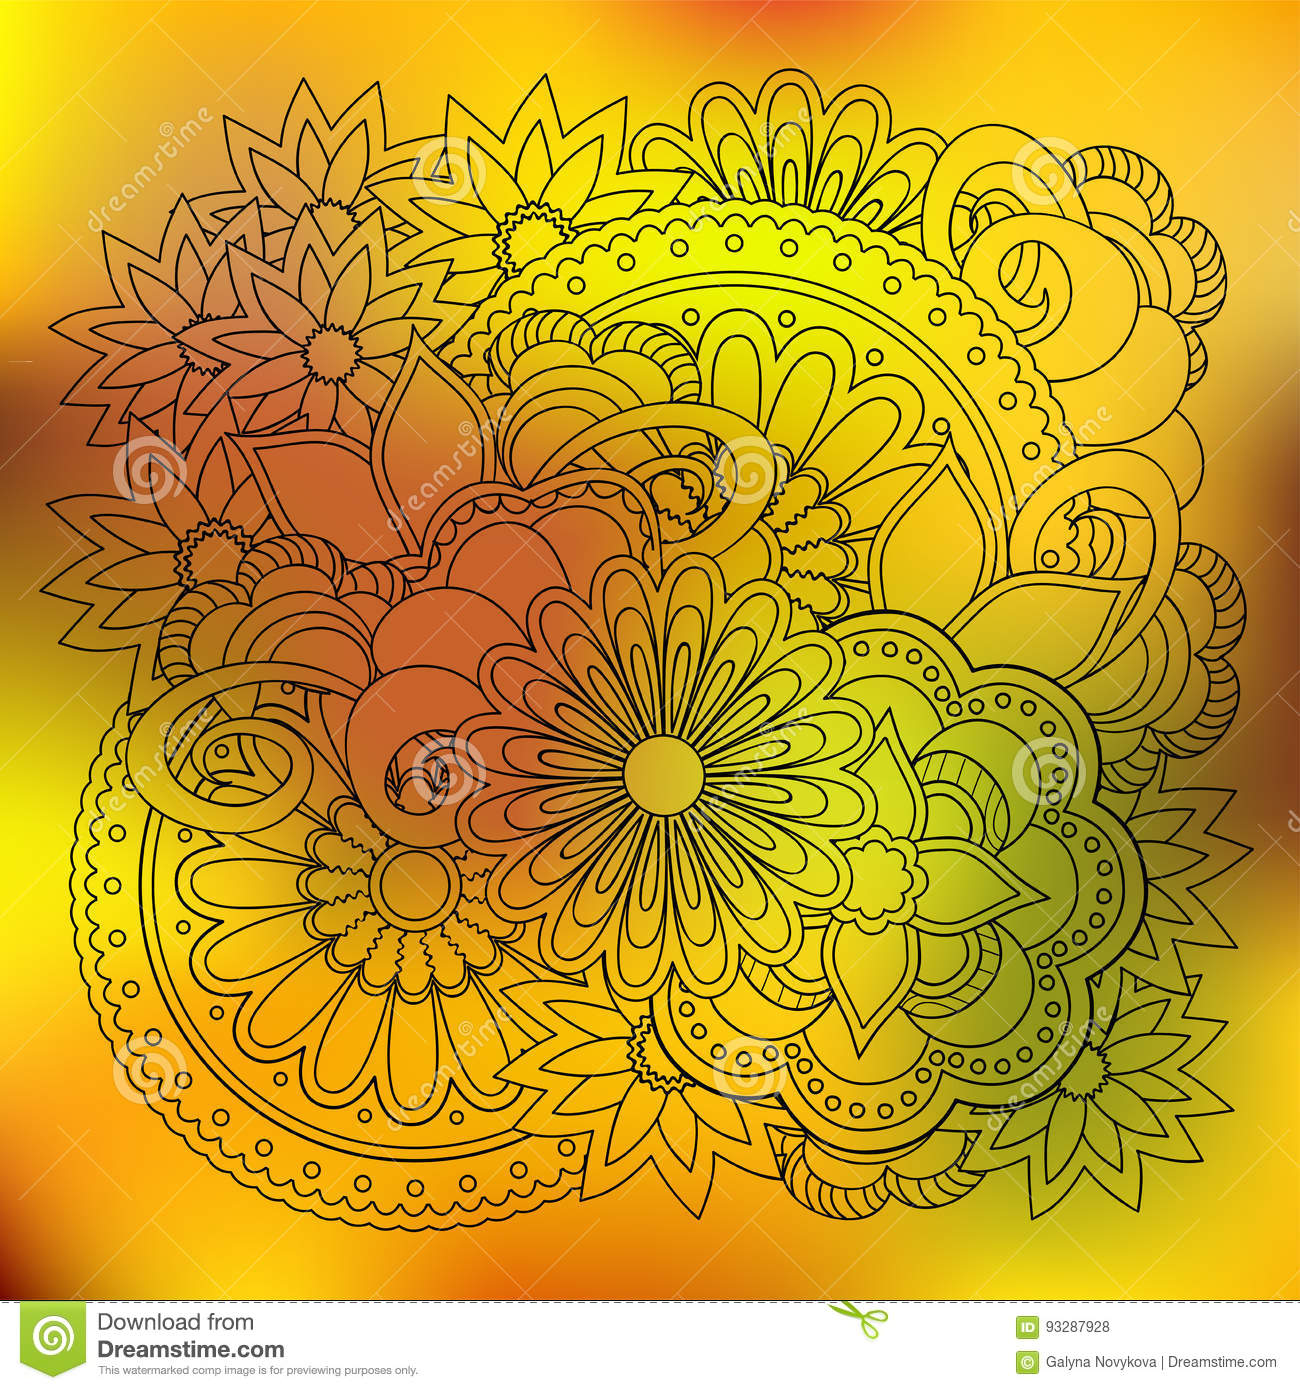 Transparent Floral Summer Composition With Mandalas Yellow Gradi ...